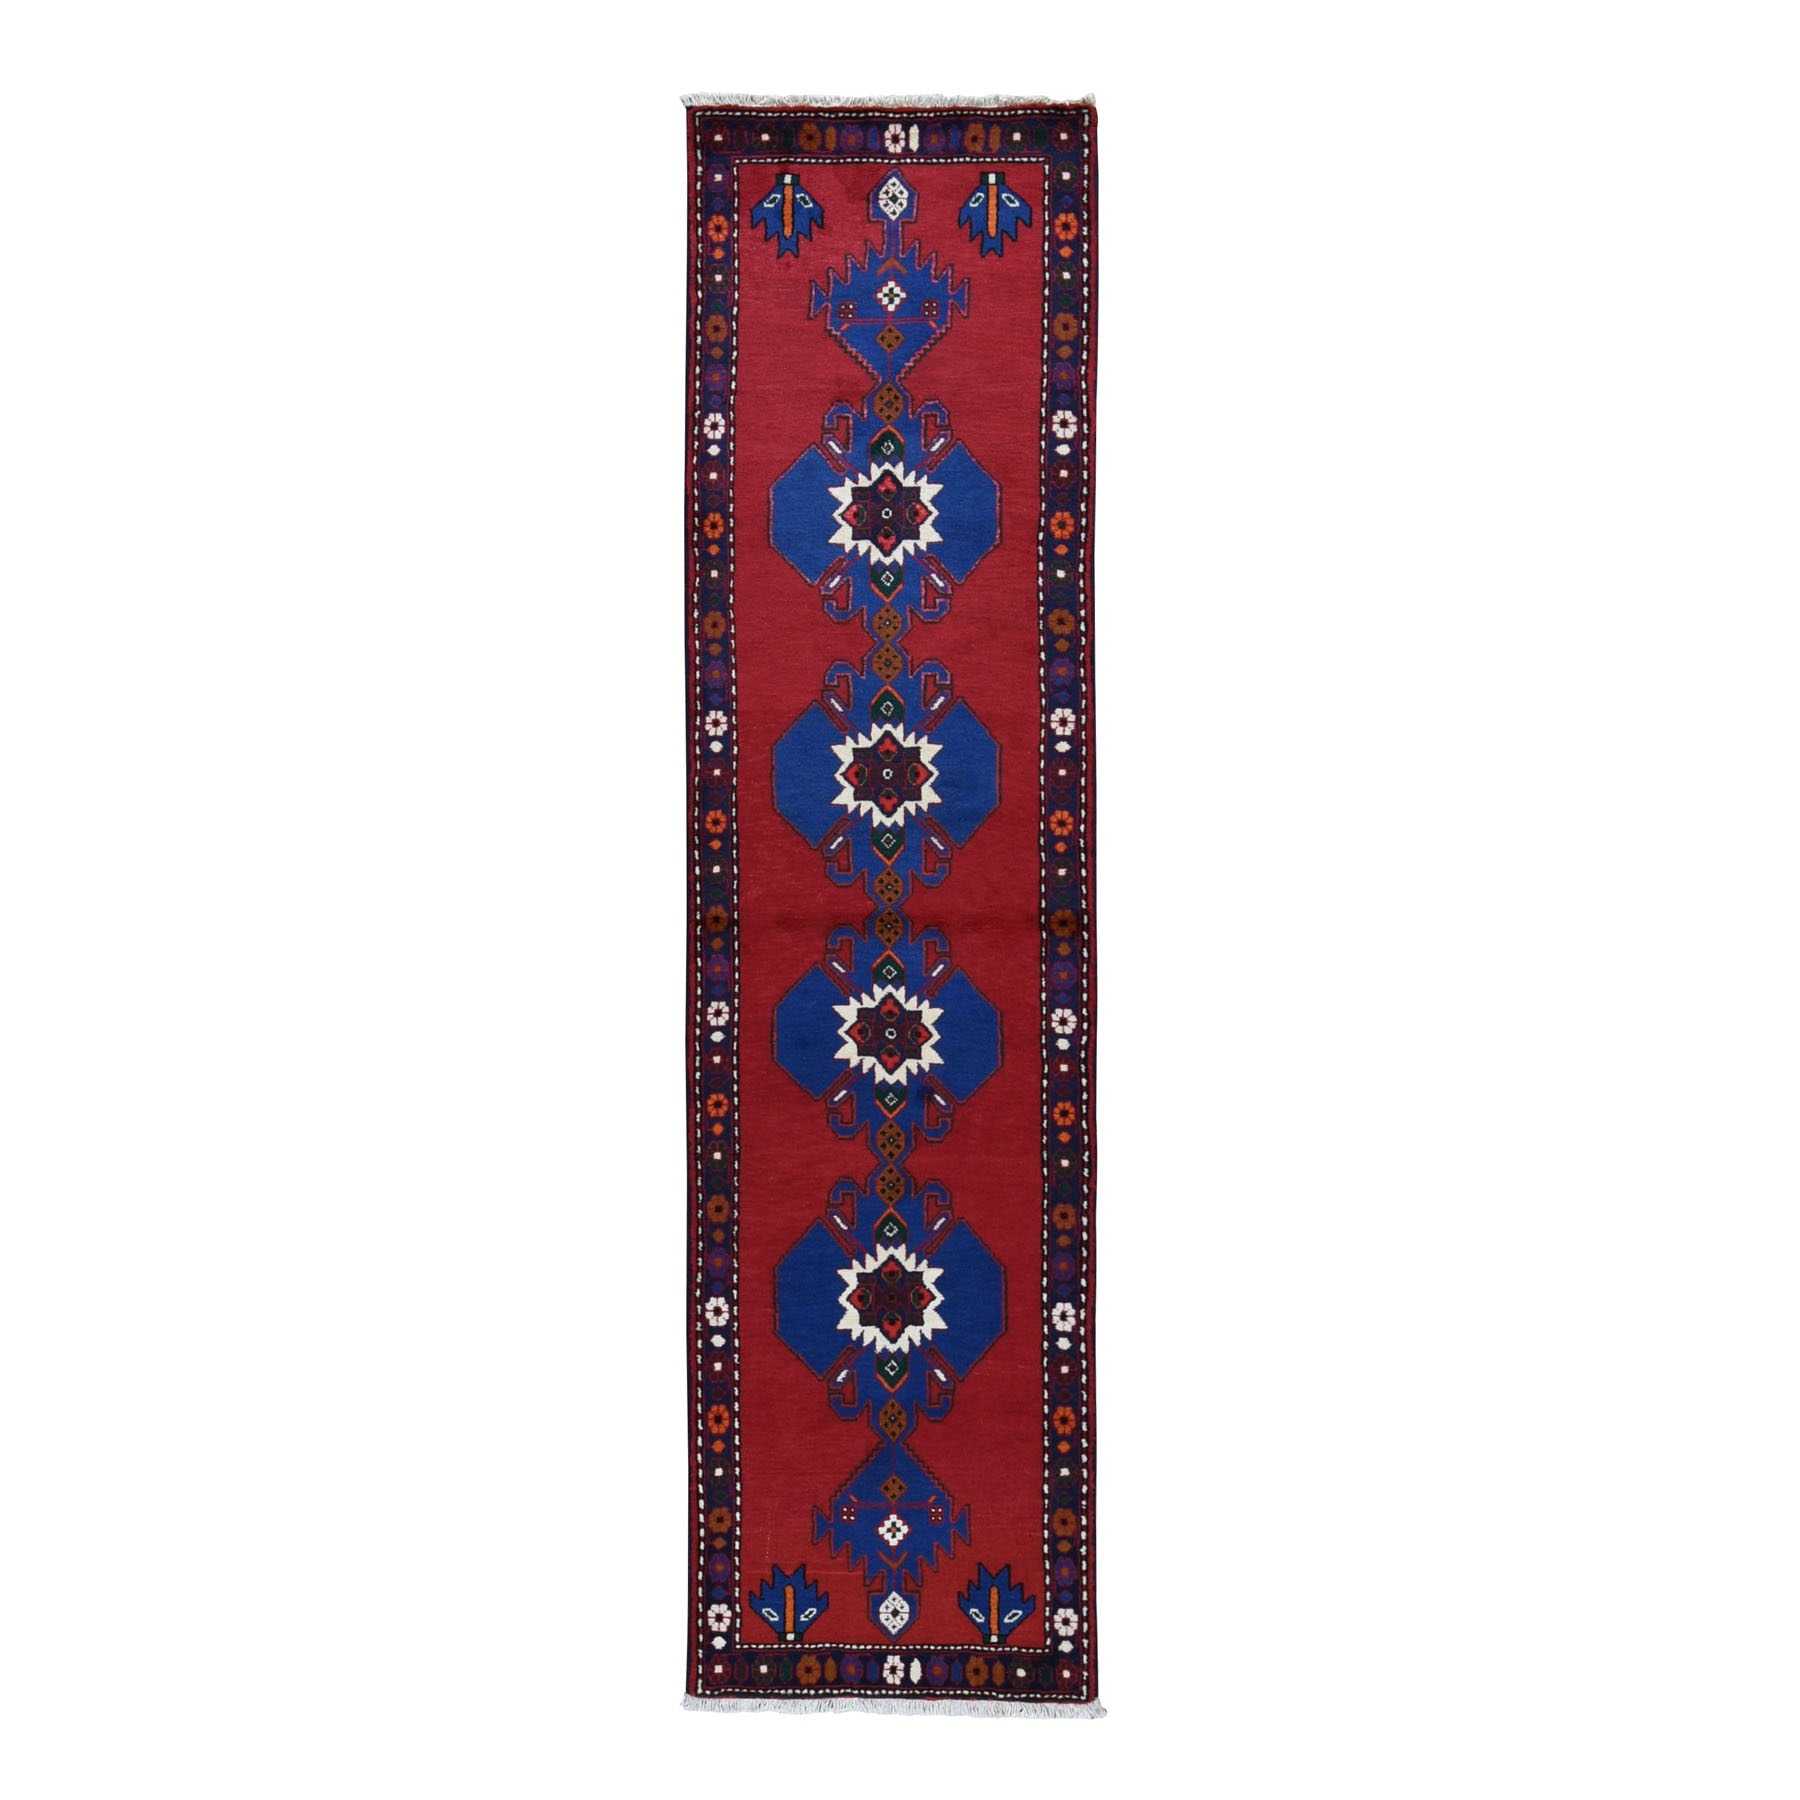 "2'5""x9'5"" Red New Persian Hamadan Pure Wool Repetitive Medallion Design Open Field Oriental Runner Rug"